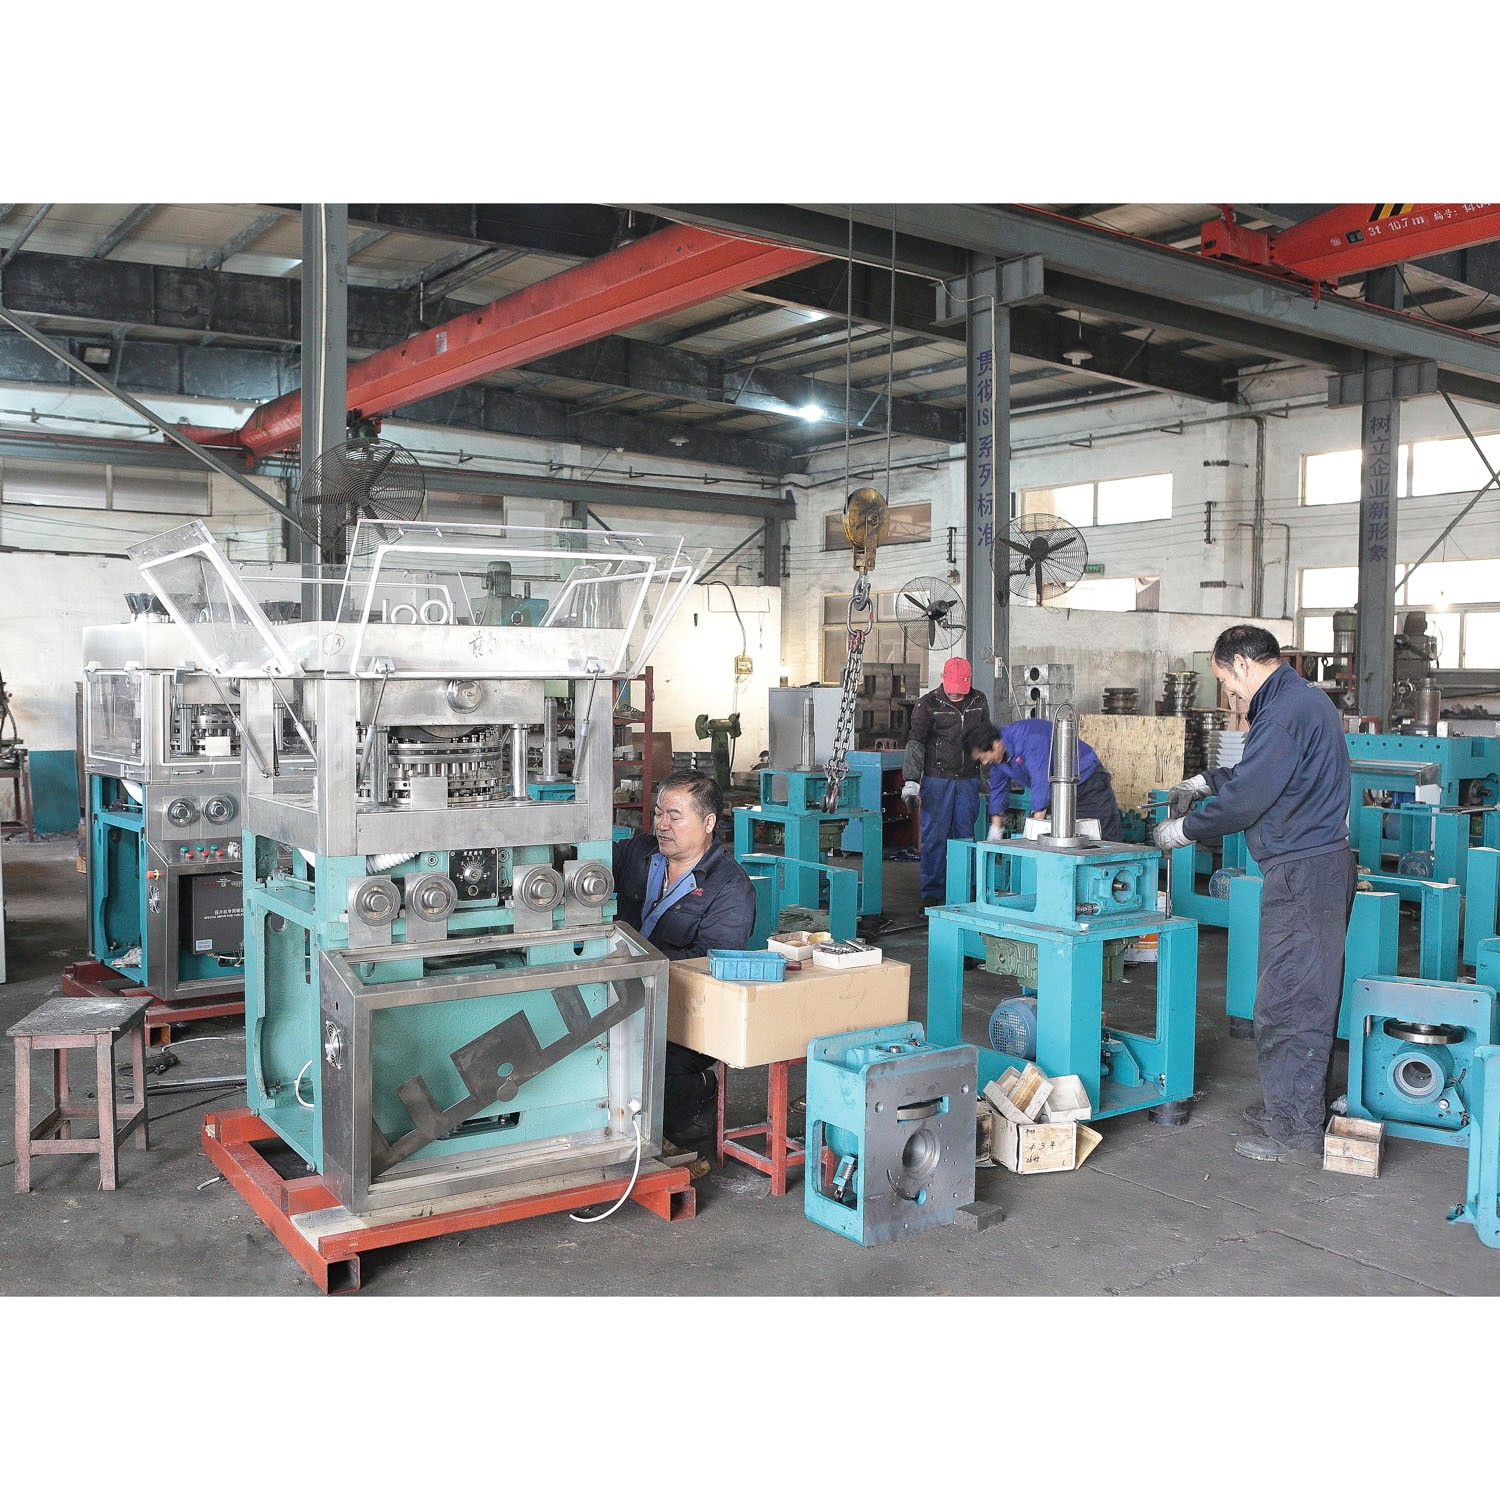 Rotary Chicken Essence Tablet Press Machinery Manufacturers, Rotary Chicken Essence Tablet Press Machinery Factory, Supply Rotary Chicken Essence Tablet Press Machinery